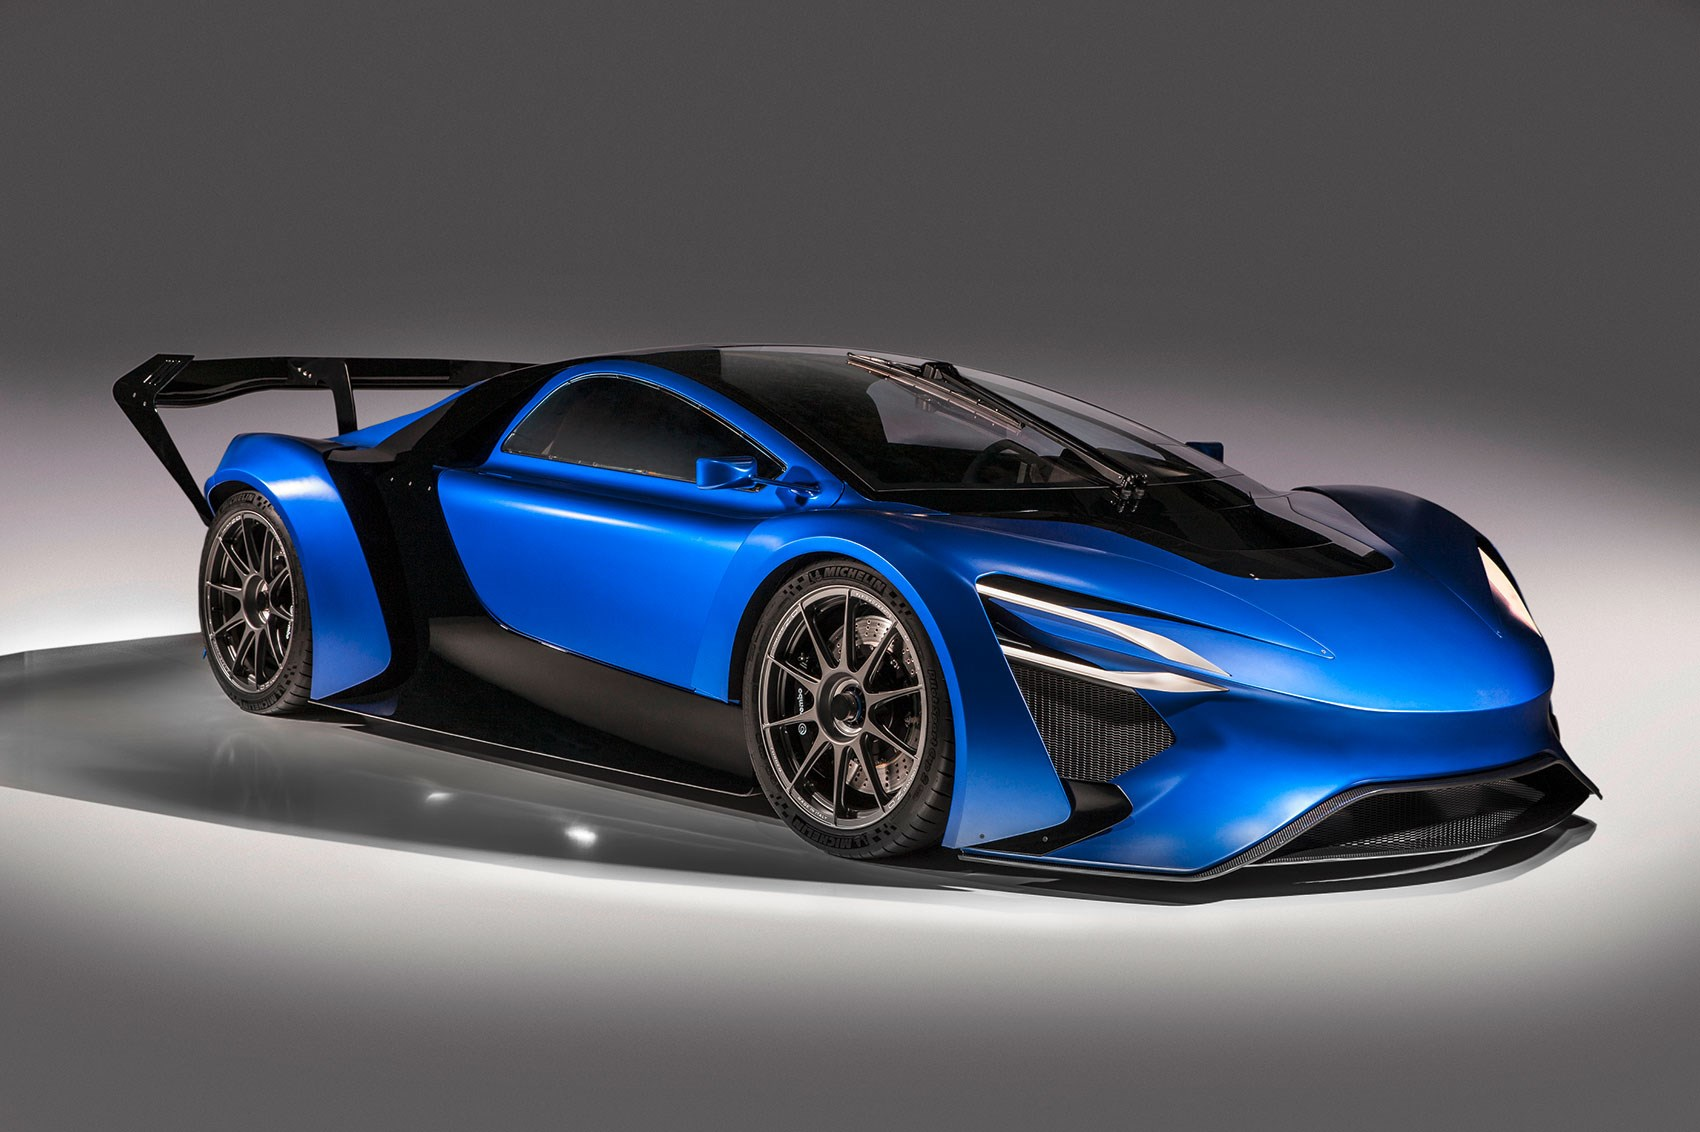 Techrules Tries To Rewrite The Rules New Trev Supercar Revealed By Car Magazine